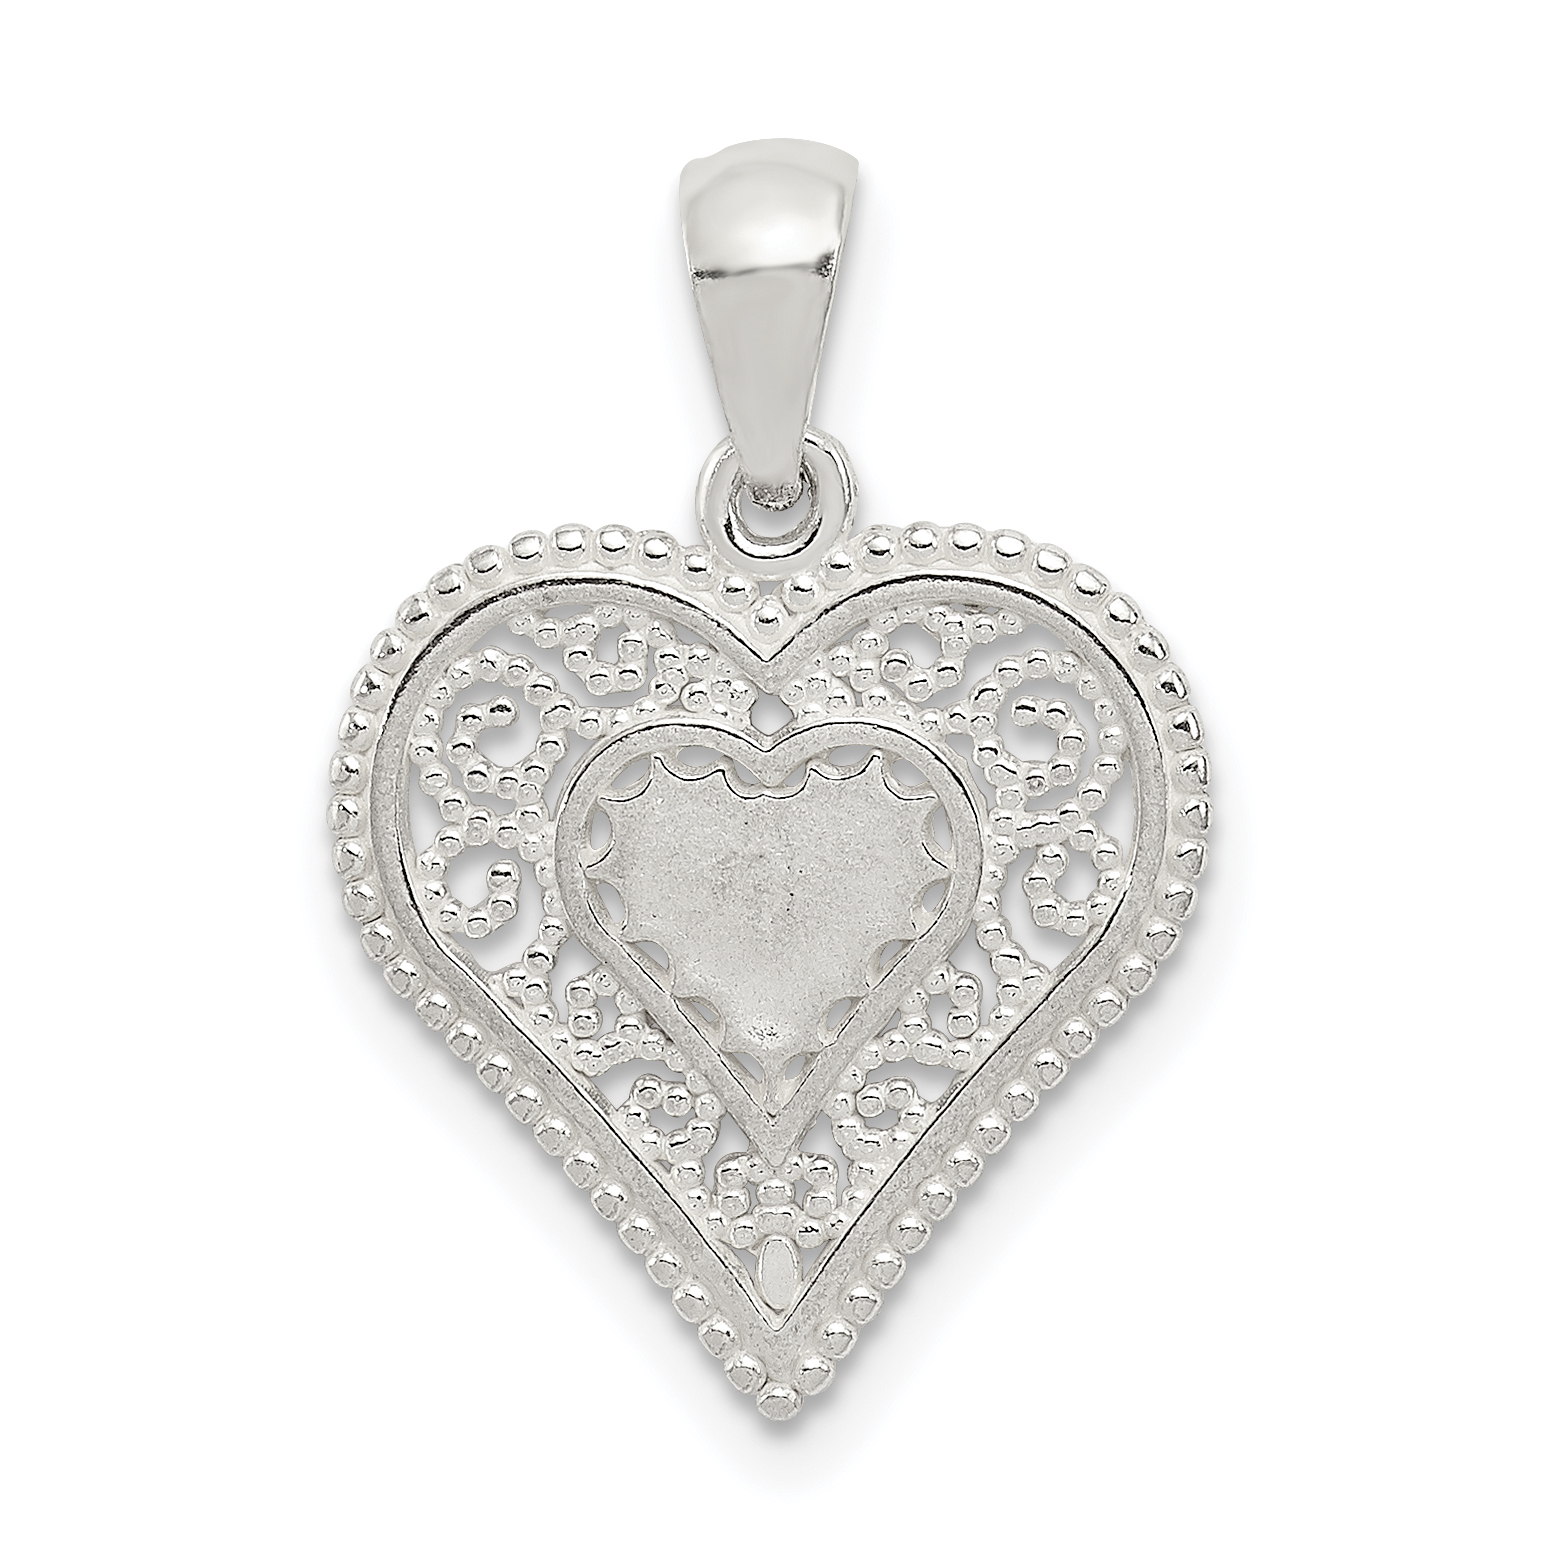 Silver polished filigree heart pendant weight 087 grams length sterling silver polished filigree heart pendant weight 087 grams length mm width mm aloadofball Gallery